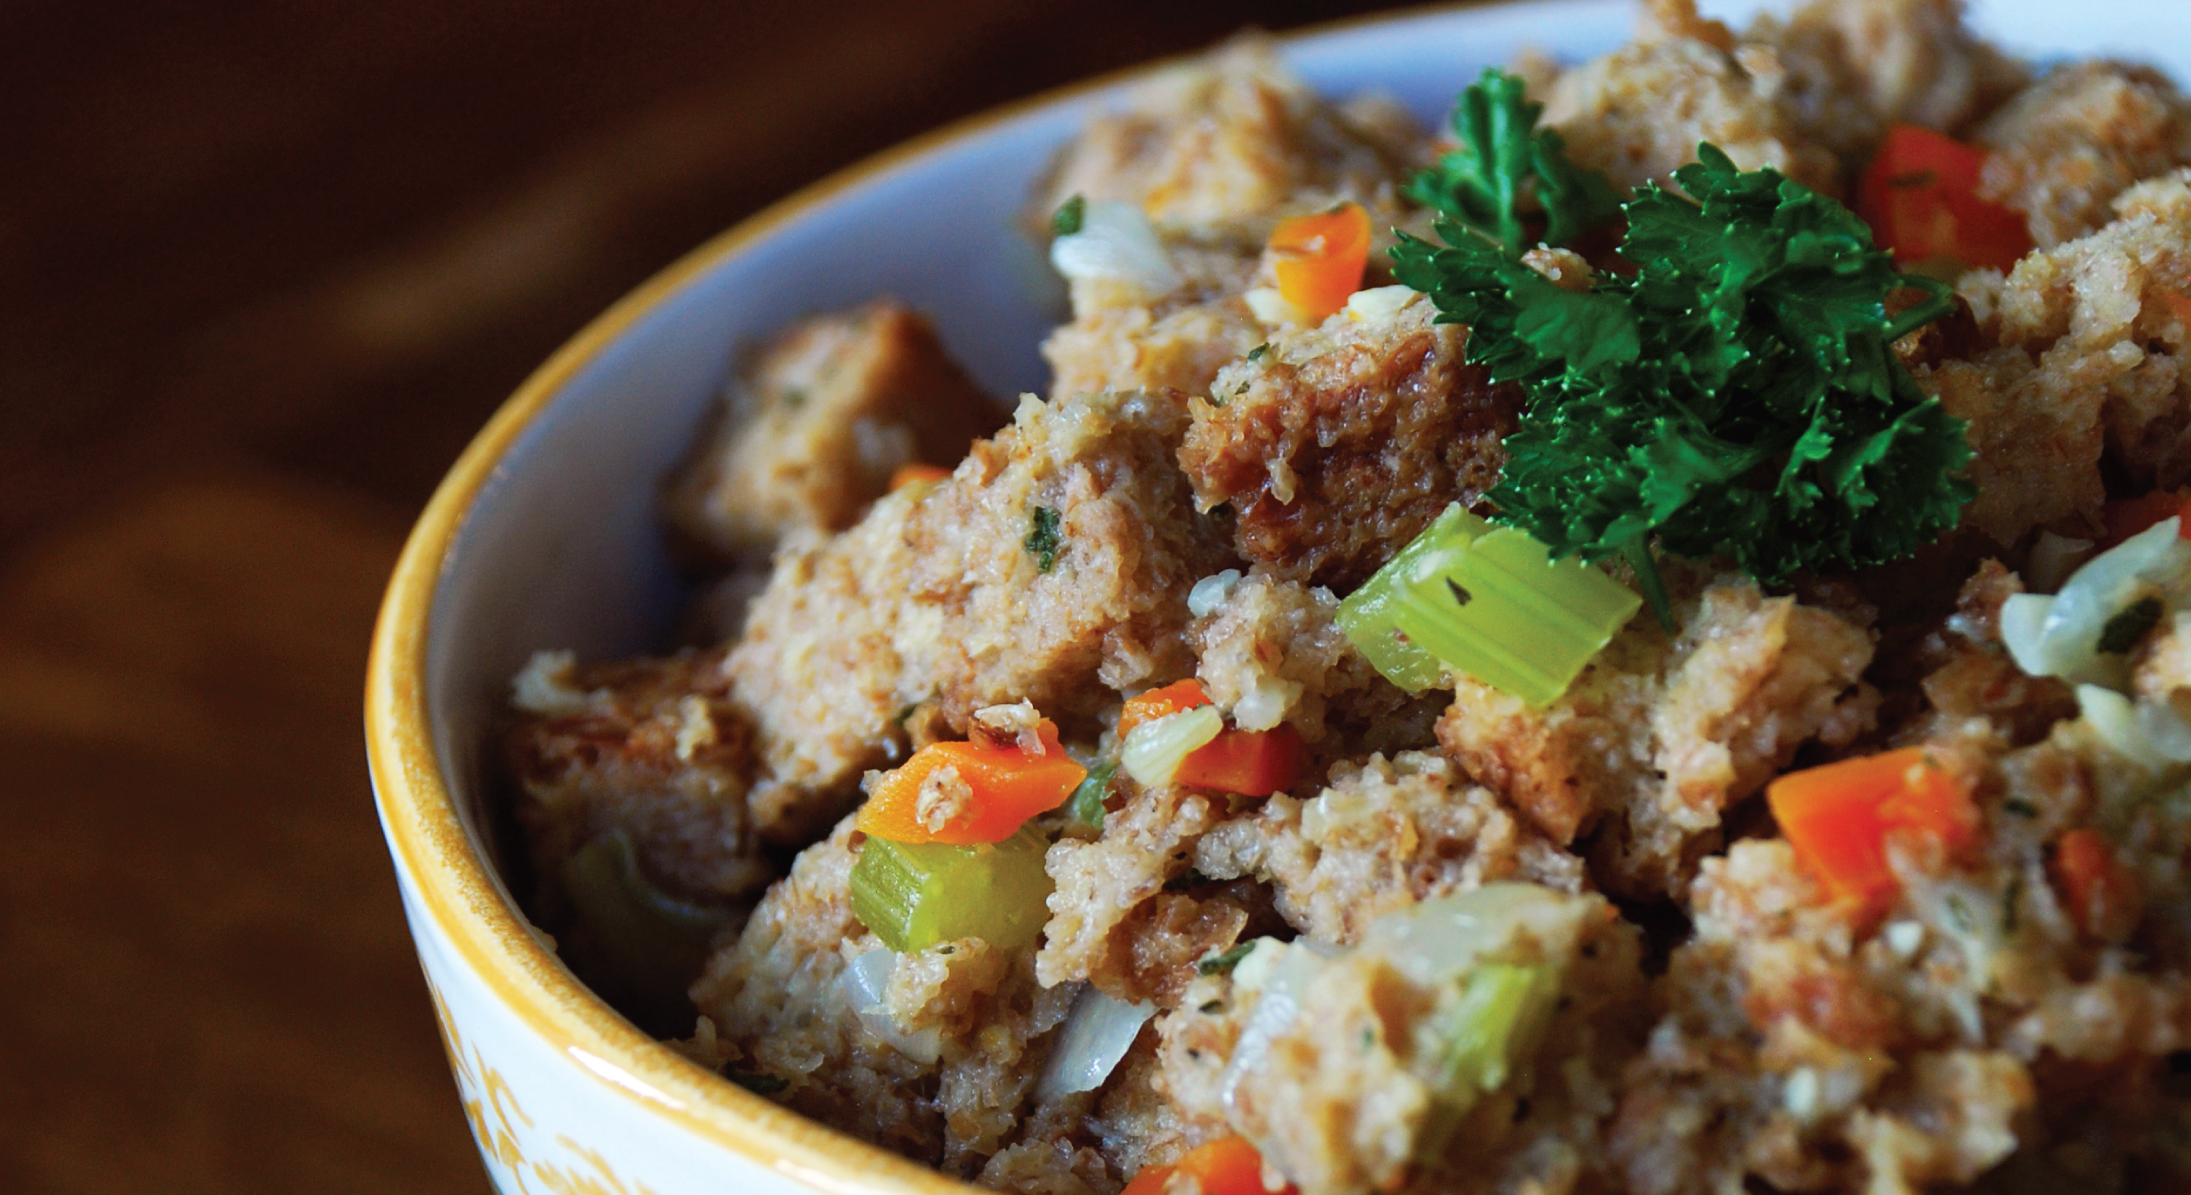 Shiloh Farms Sprouted 5 Grain Bread Stuffing